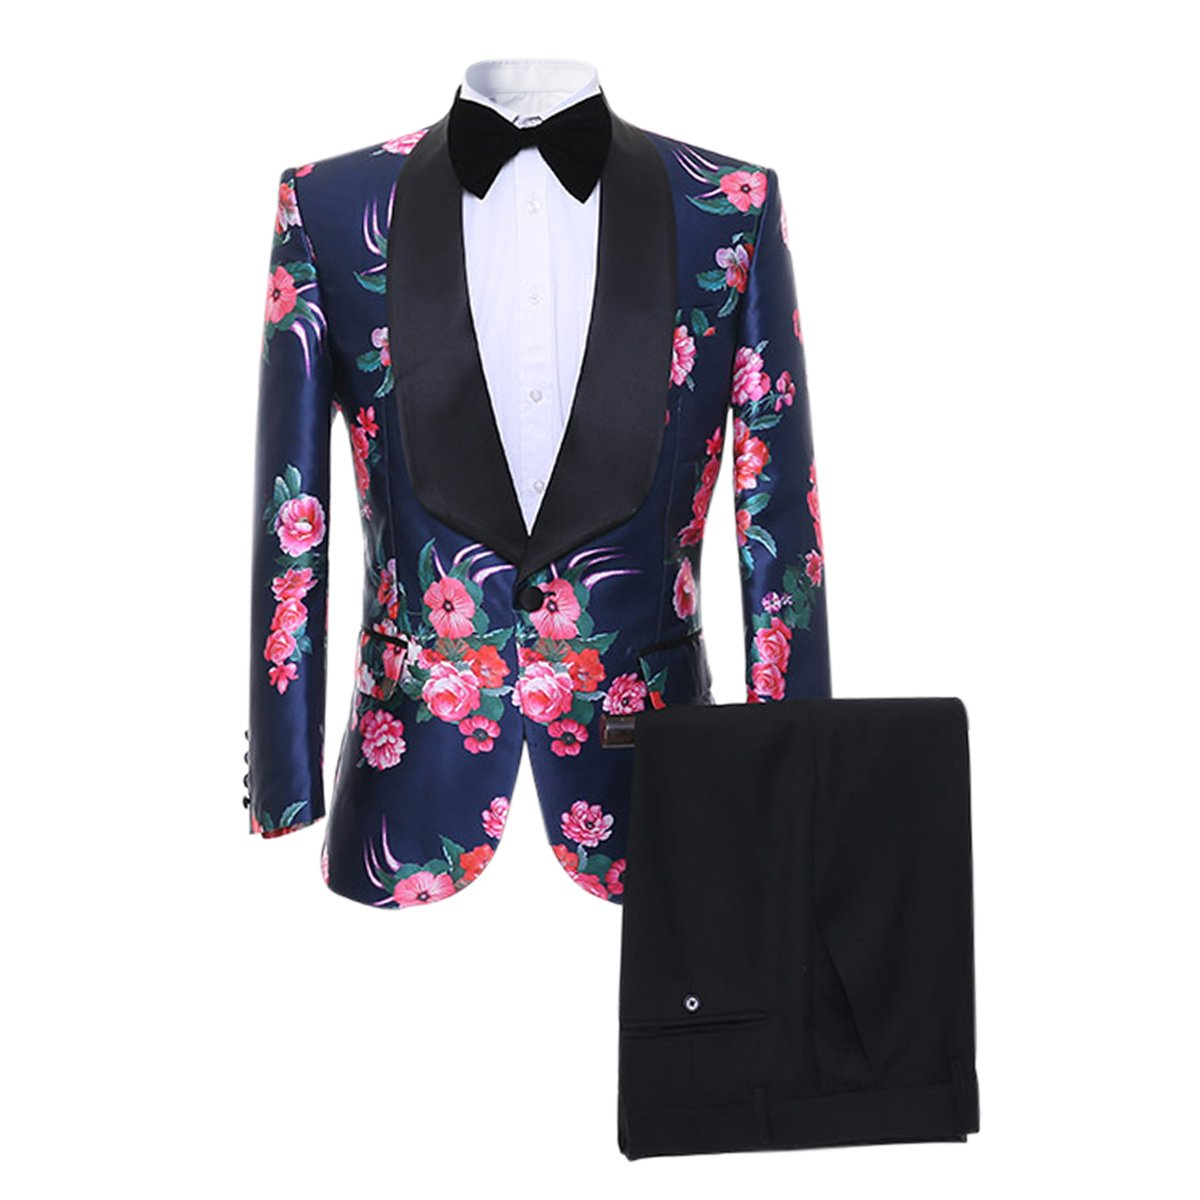 Cloudstyle Mens Suit Fit 2-Piece Single Breasted Blazer Floral Dress Tuxedo Party Formal Jacket&Trousers by Cloudstyle (Image #1)